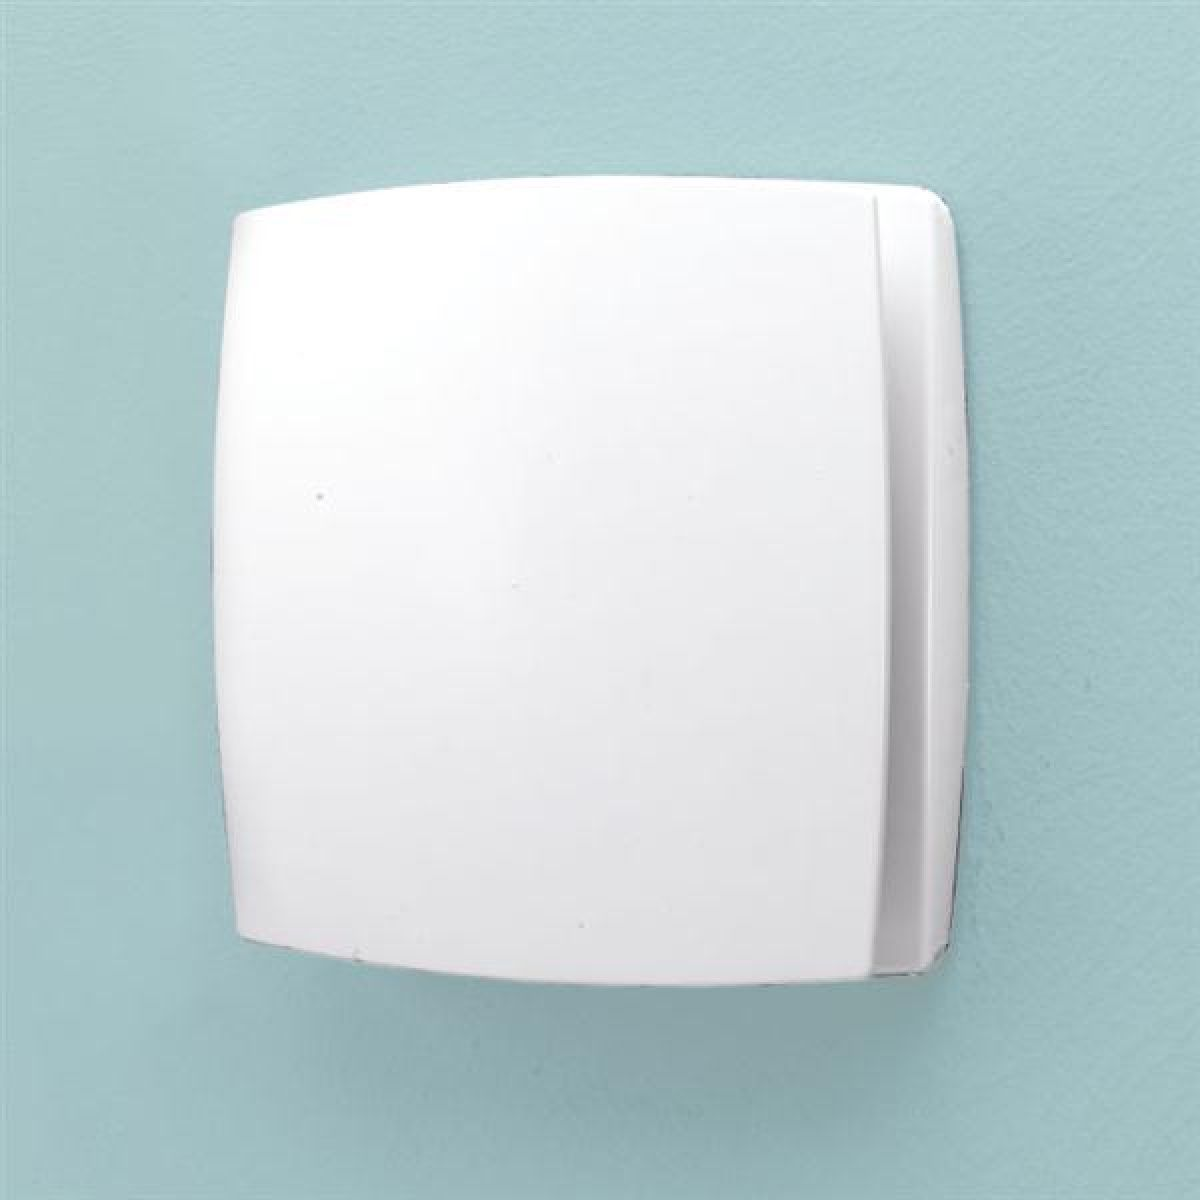 HiB Breeze Wall Mounted Wetroom Extractor Fan with Humidity Sensor in White